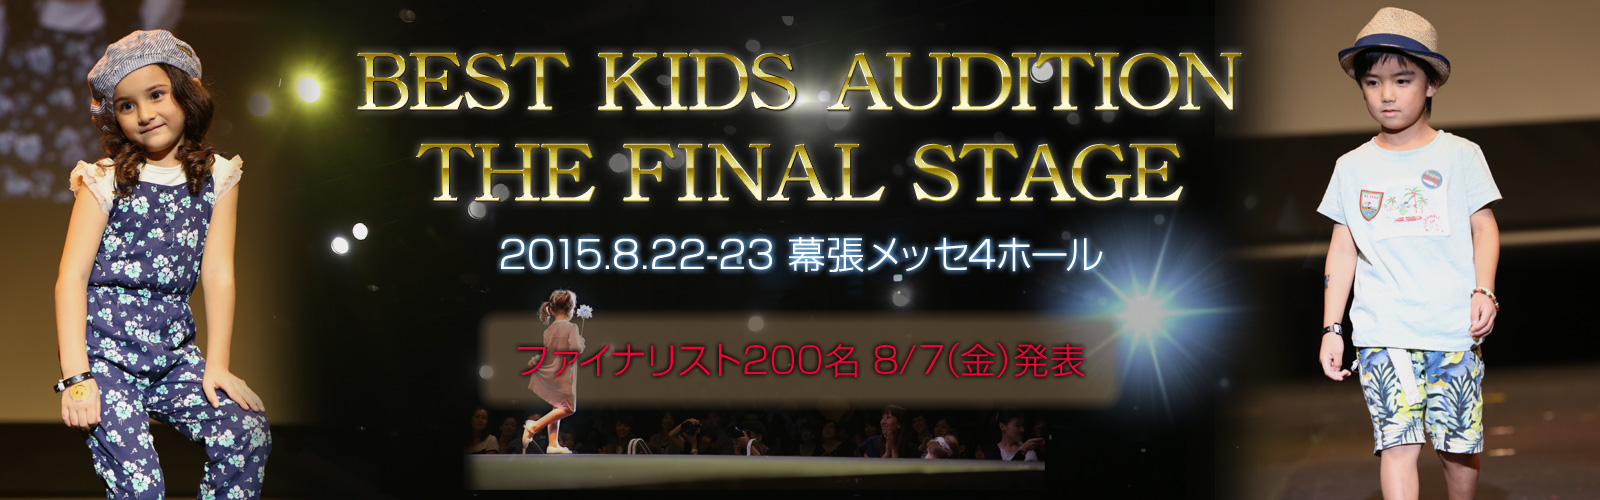 BEST KIDS AUDITION THE FINAL STAGE 2015.8.22-23 幕張メッセ4ホール